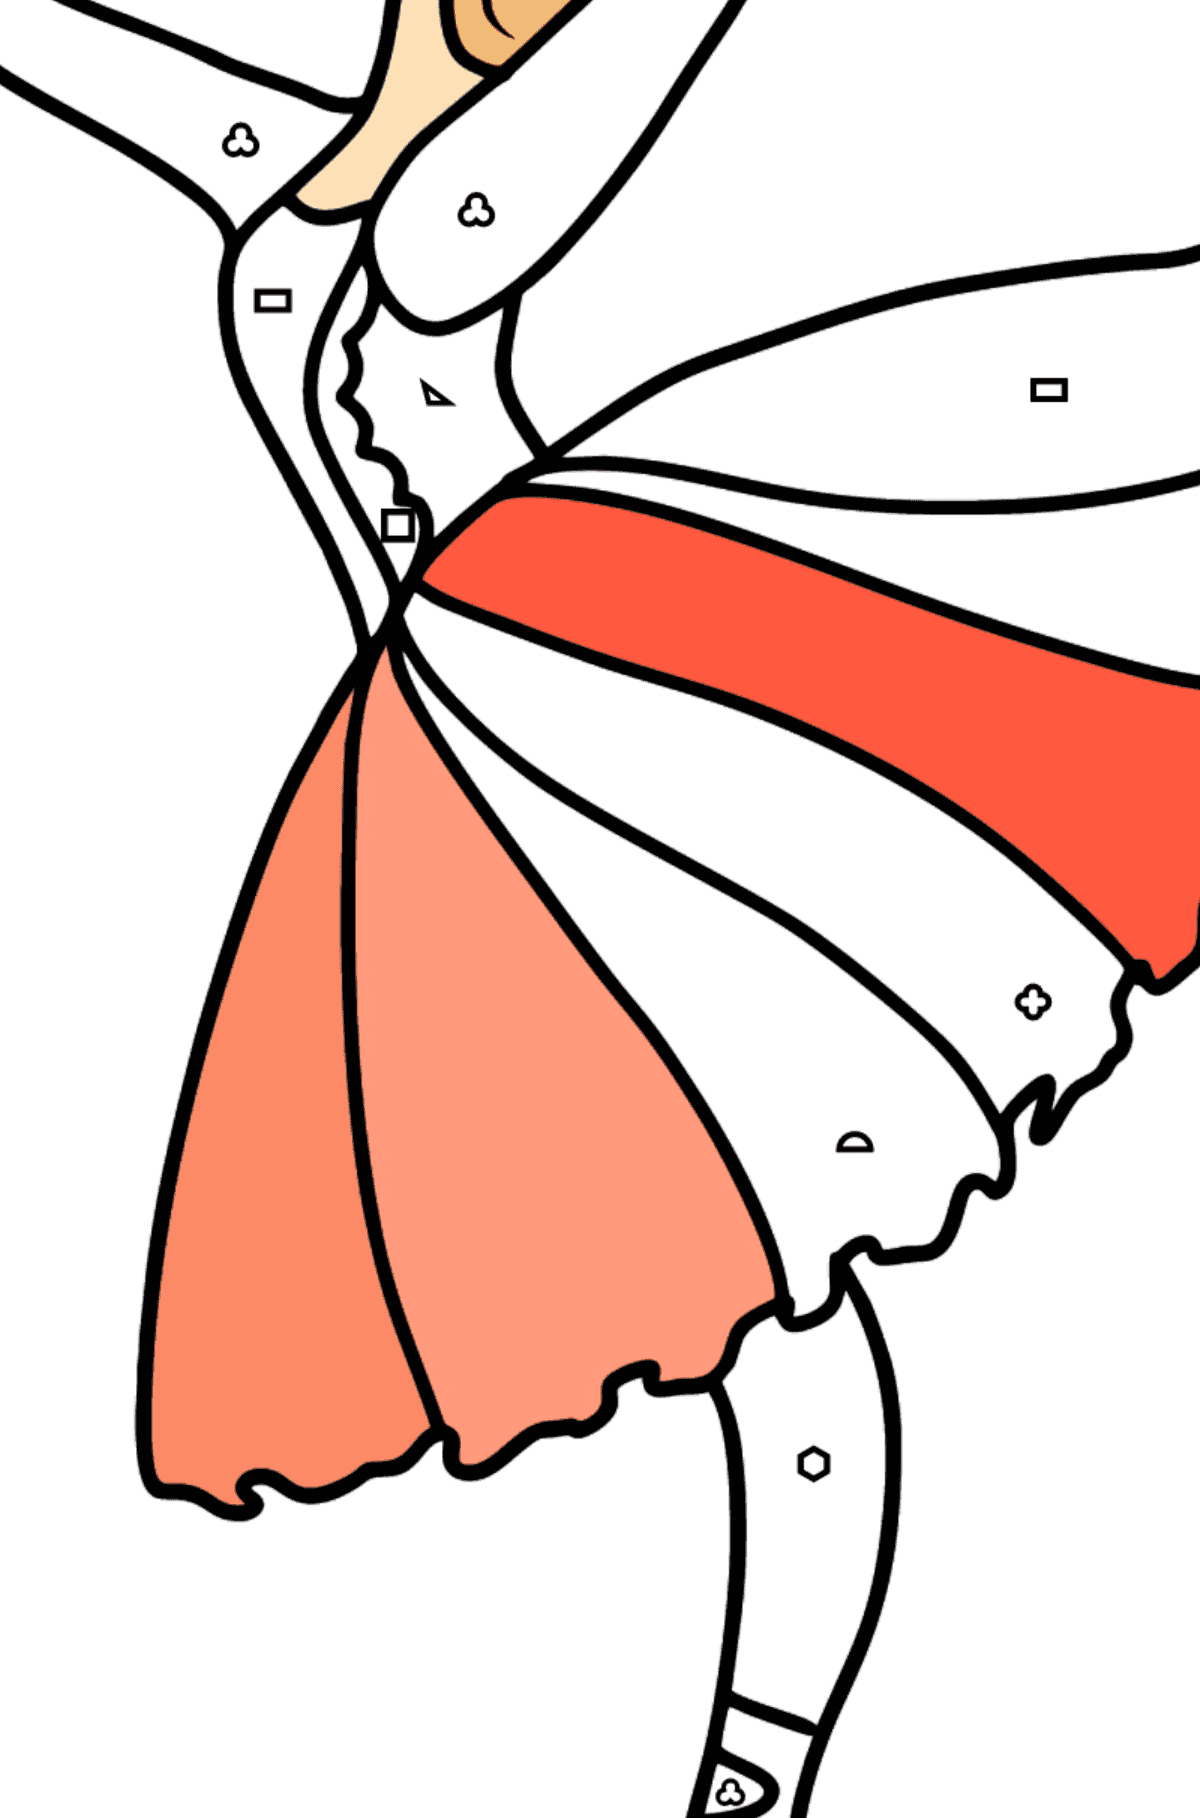 Beautiful ballerina coloring page - Coloring by Geometric Shapes for Kids